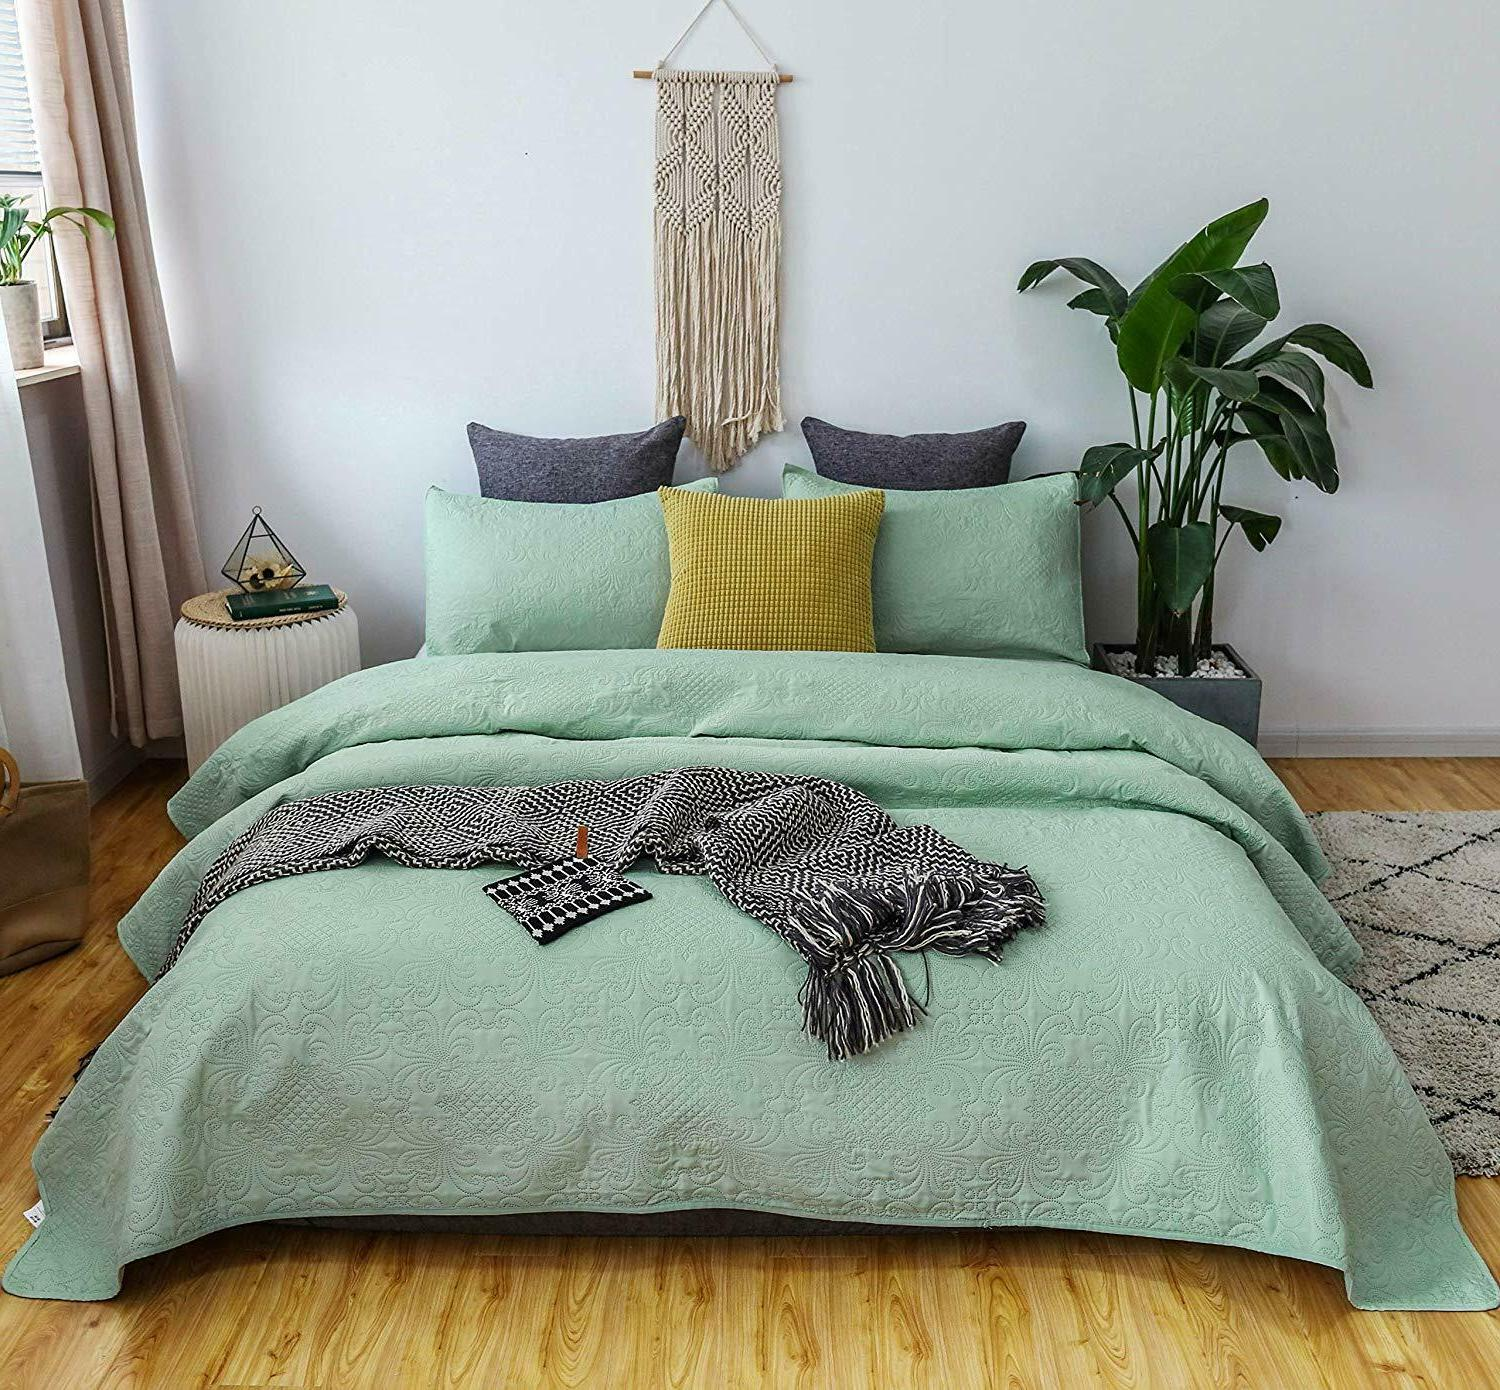 Luxury Soft Warm Microfiber Quilted Coverlet Bedspread